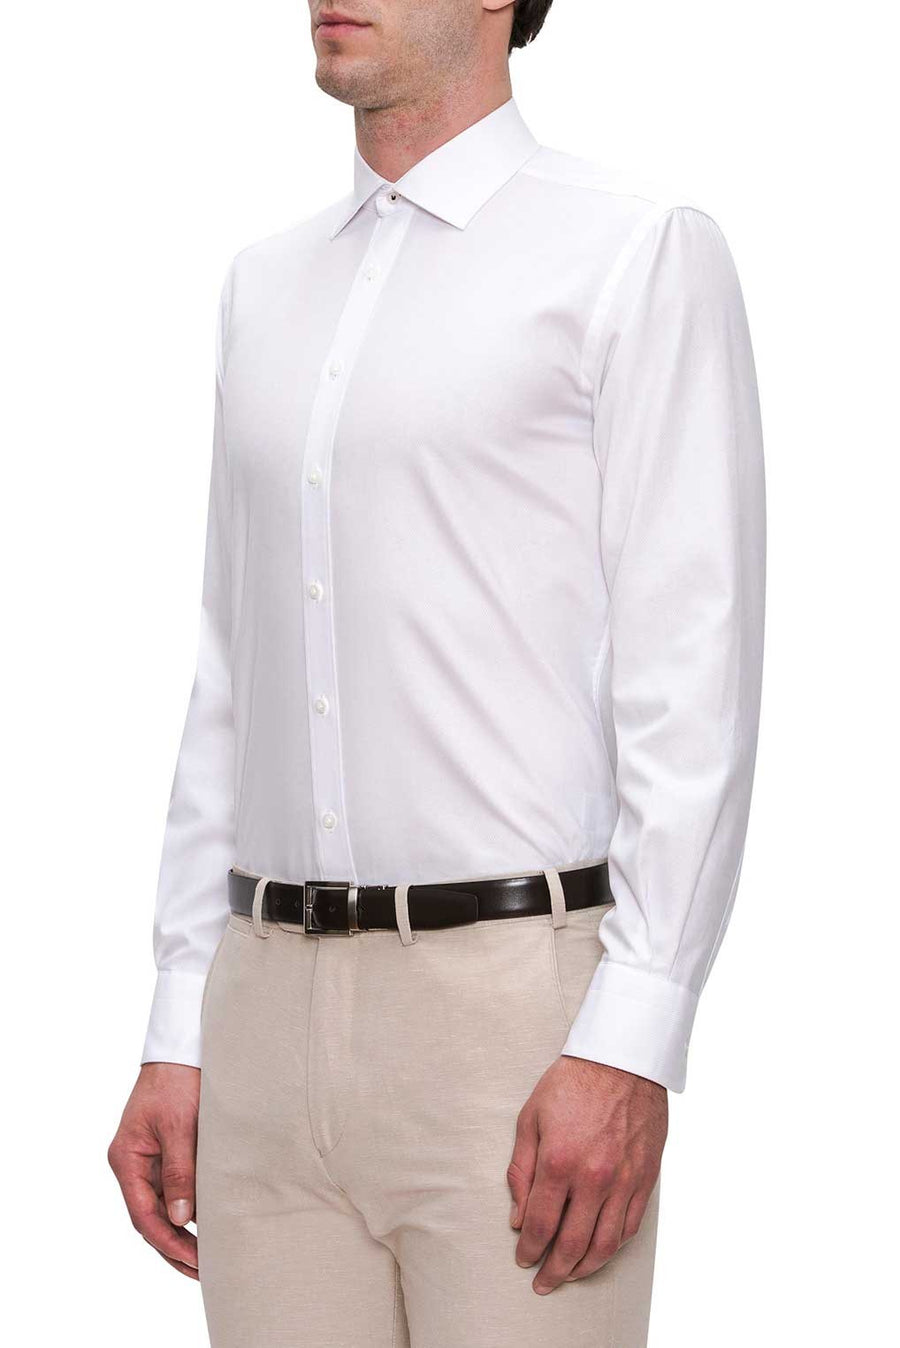 JOE BLACK SHIRT PIONEER - FJD044